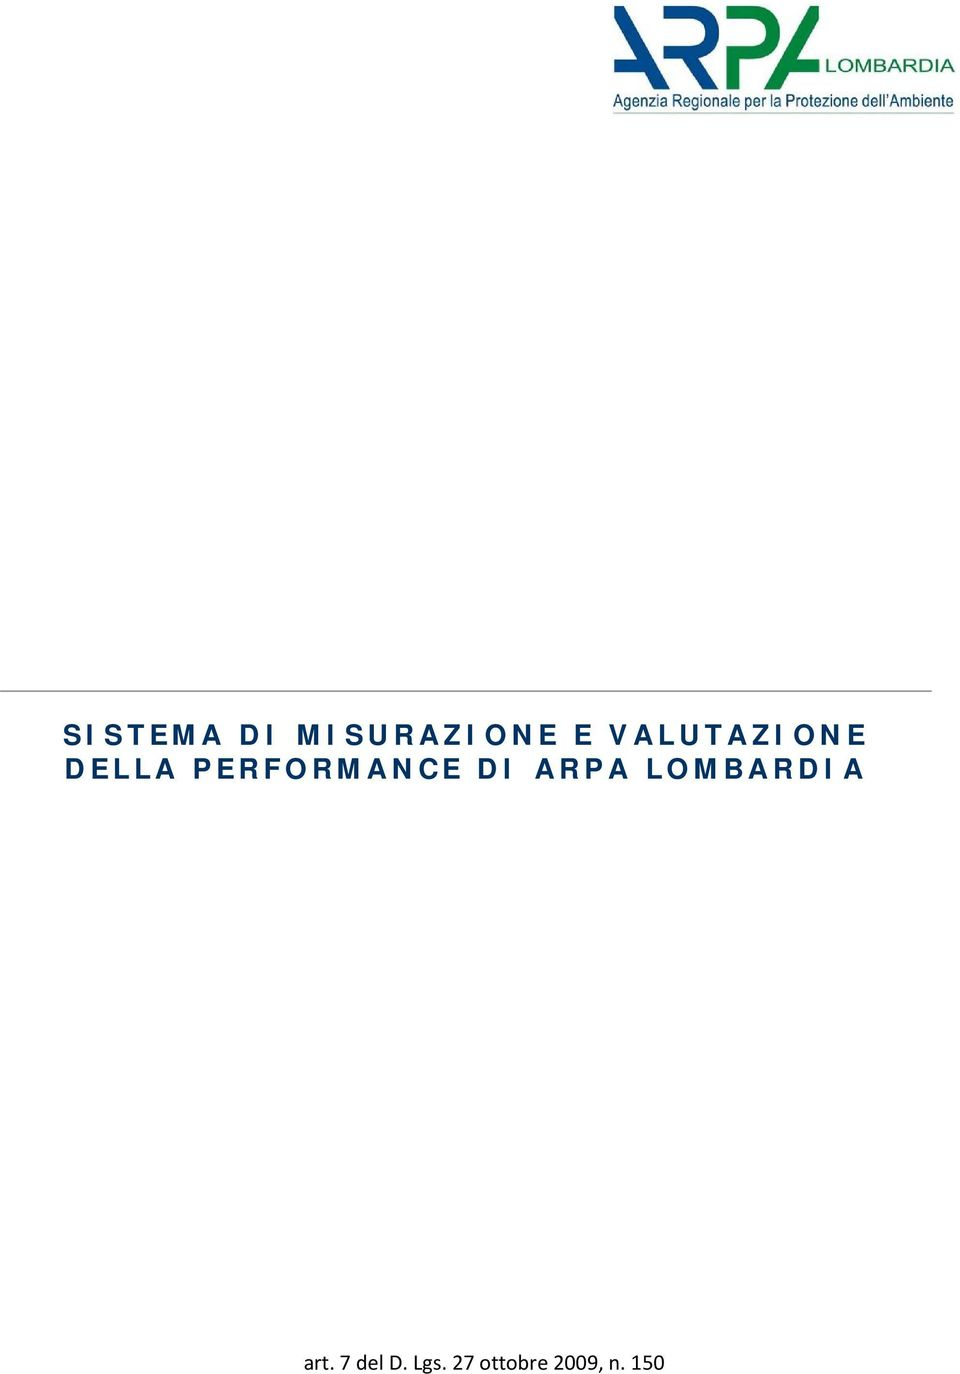 PERFORMANCE DI ARPA